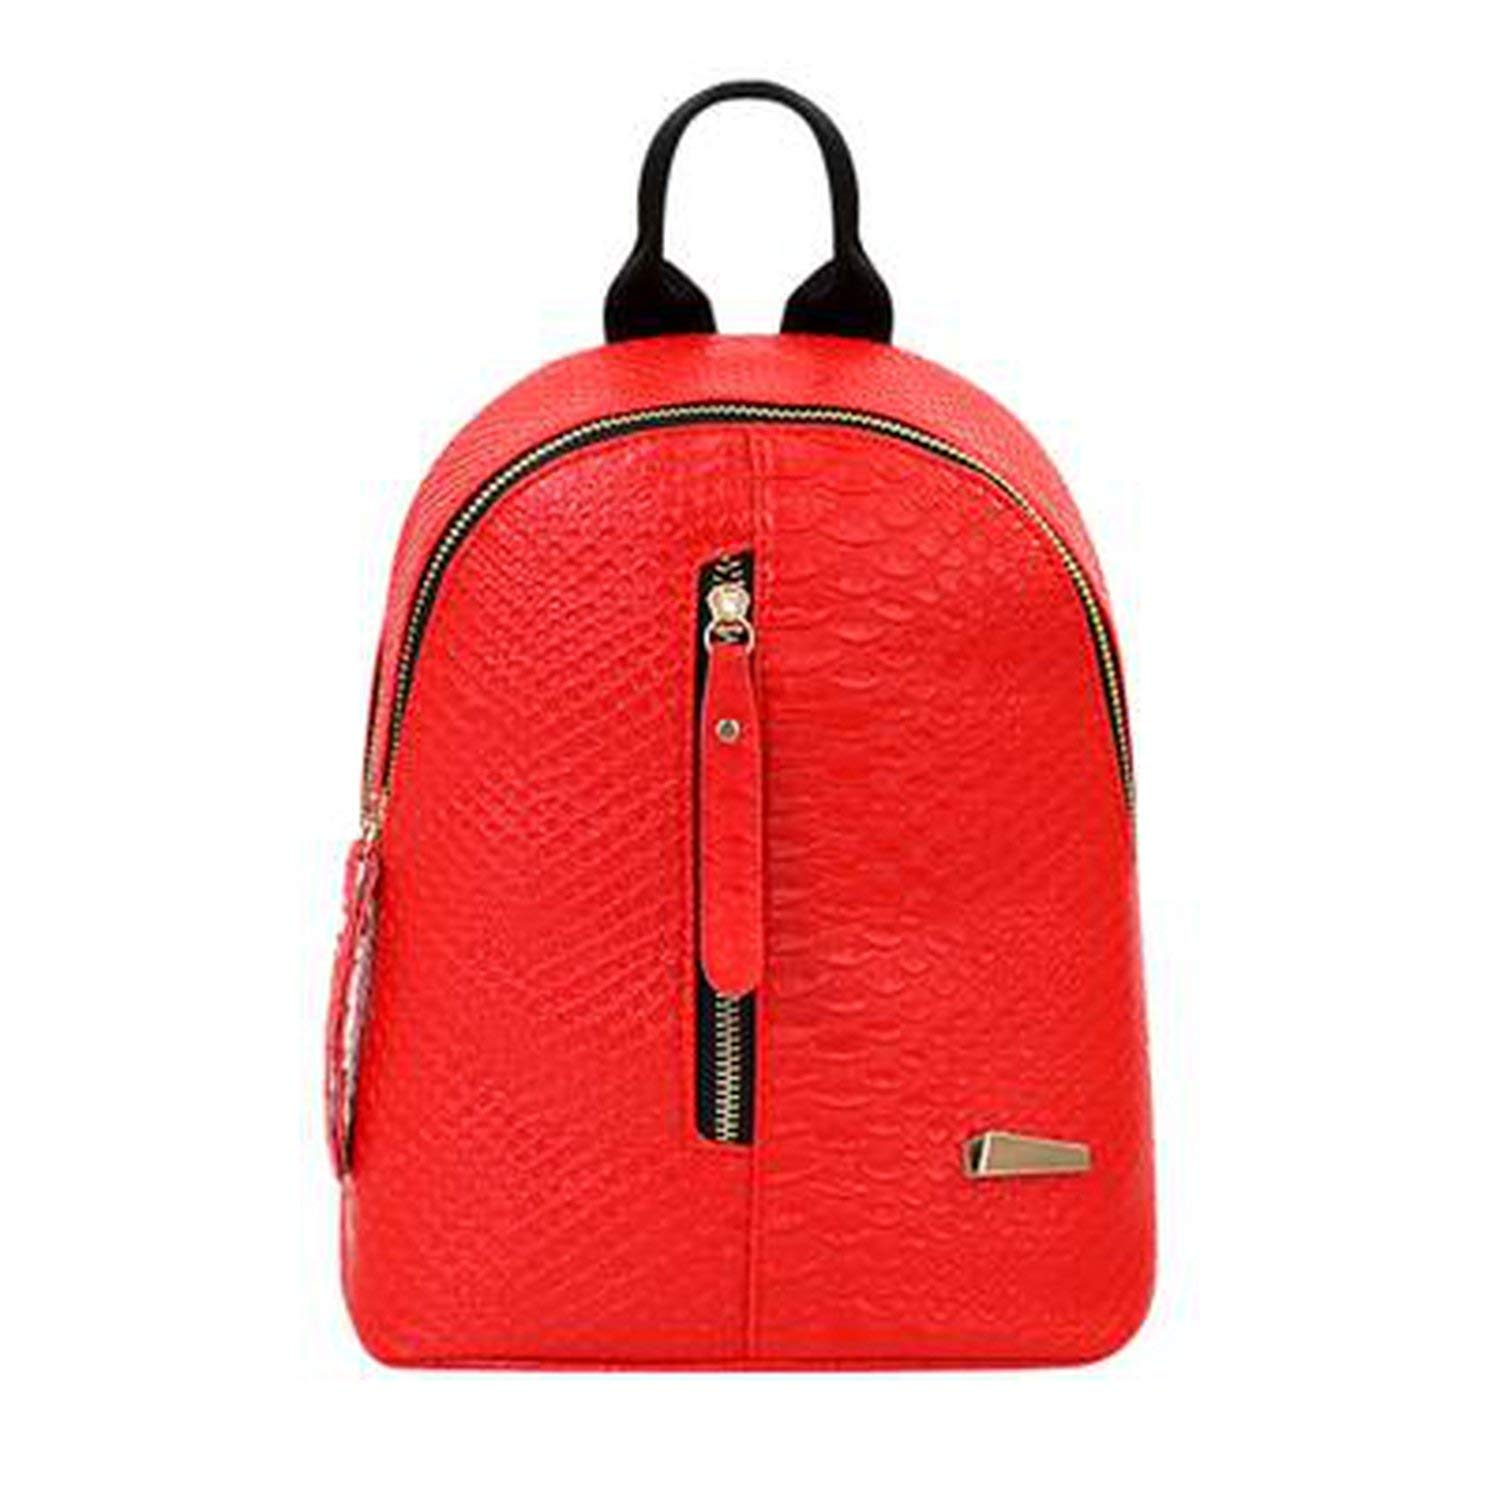 Perfues Women Backpack Pu Leather School Bags For Teenagers Girls Leisure Backpacks Rucksack